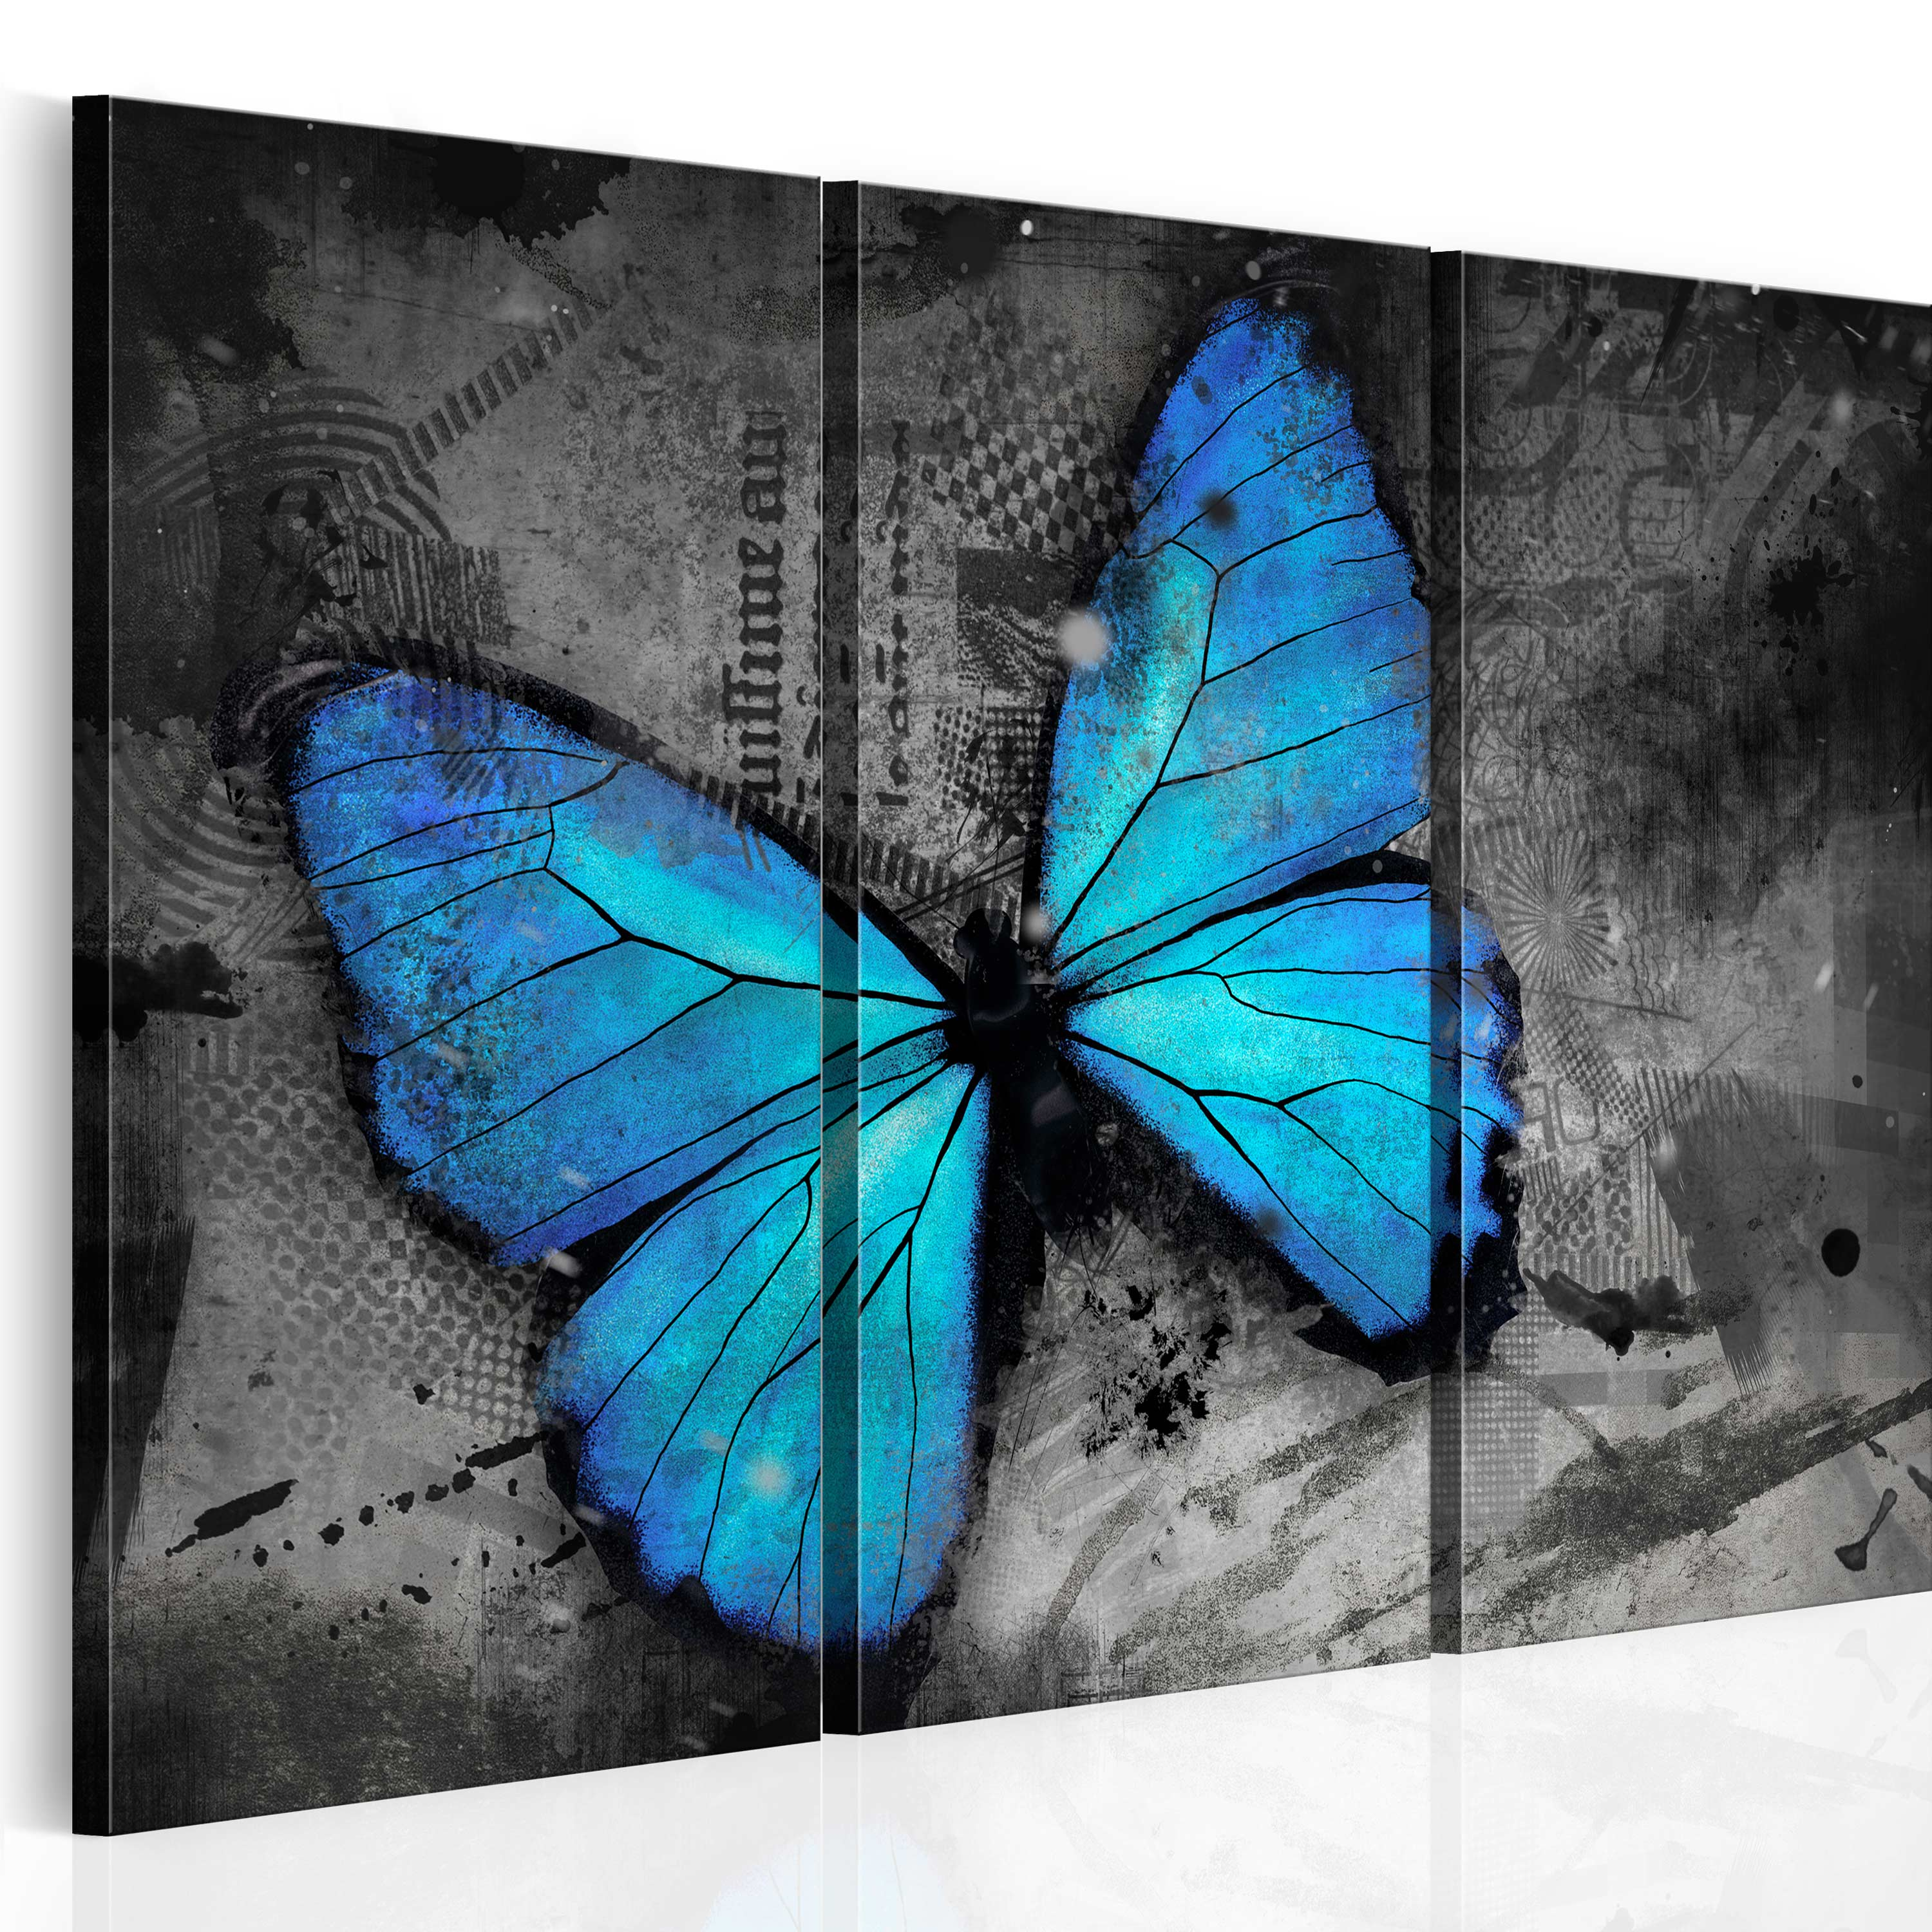 Obraz - The study of butterfly - triptych 120x80